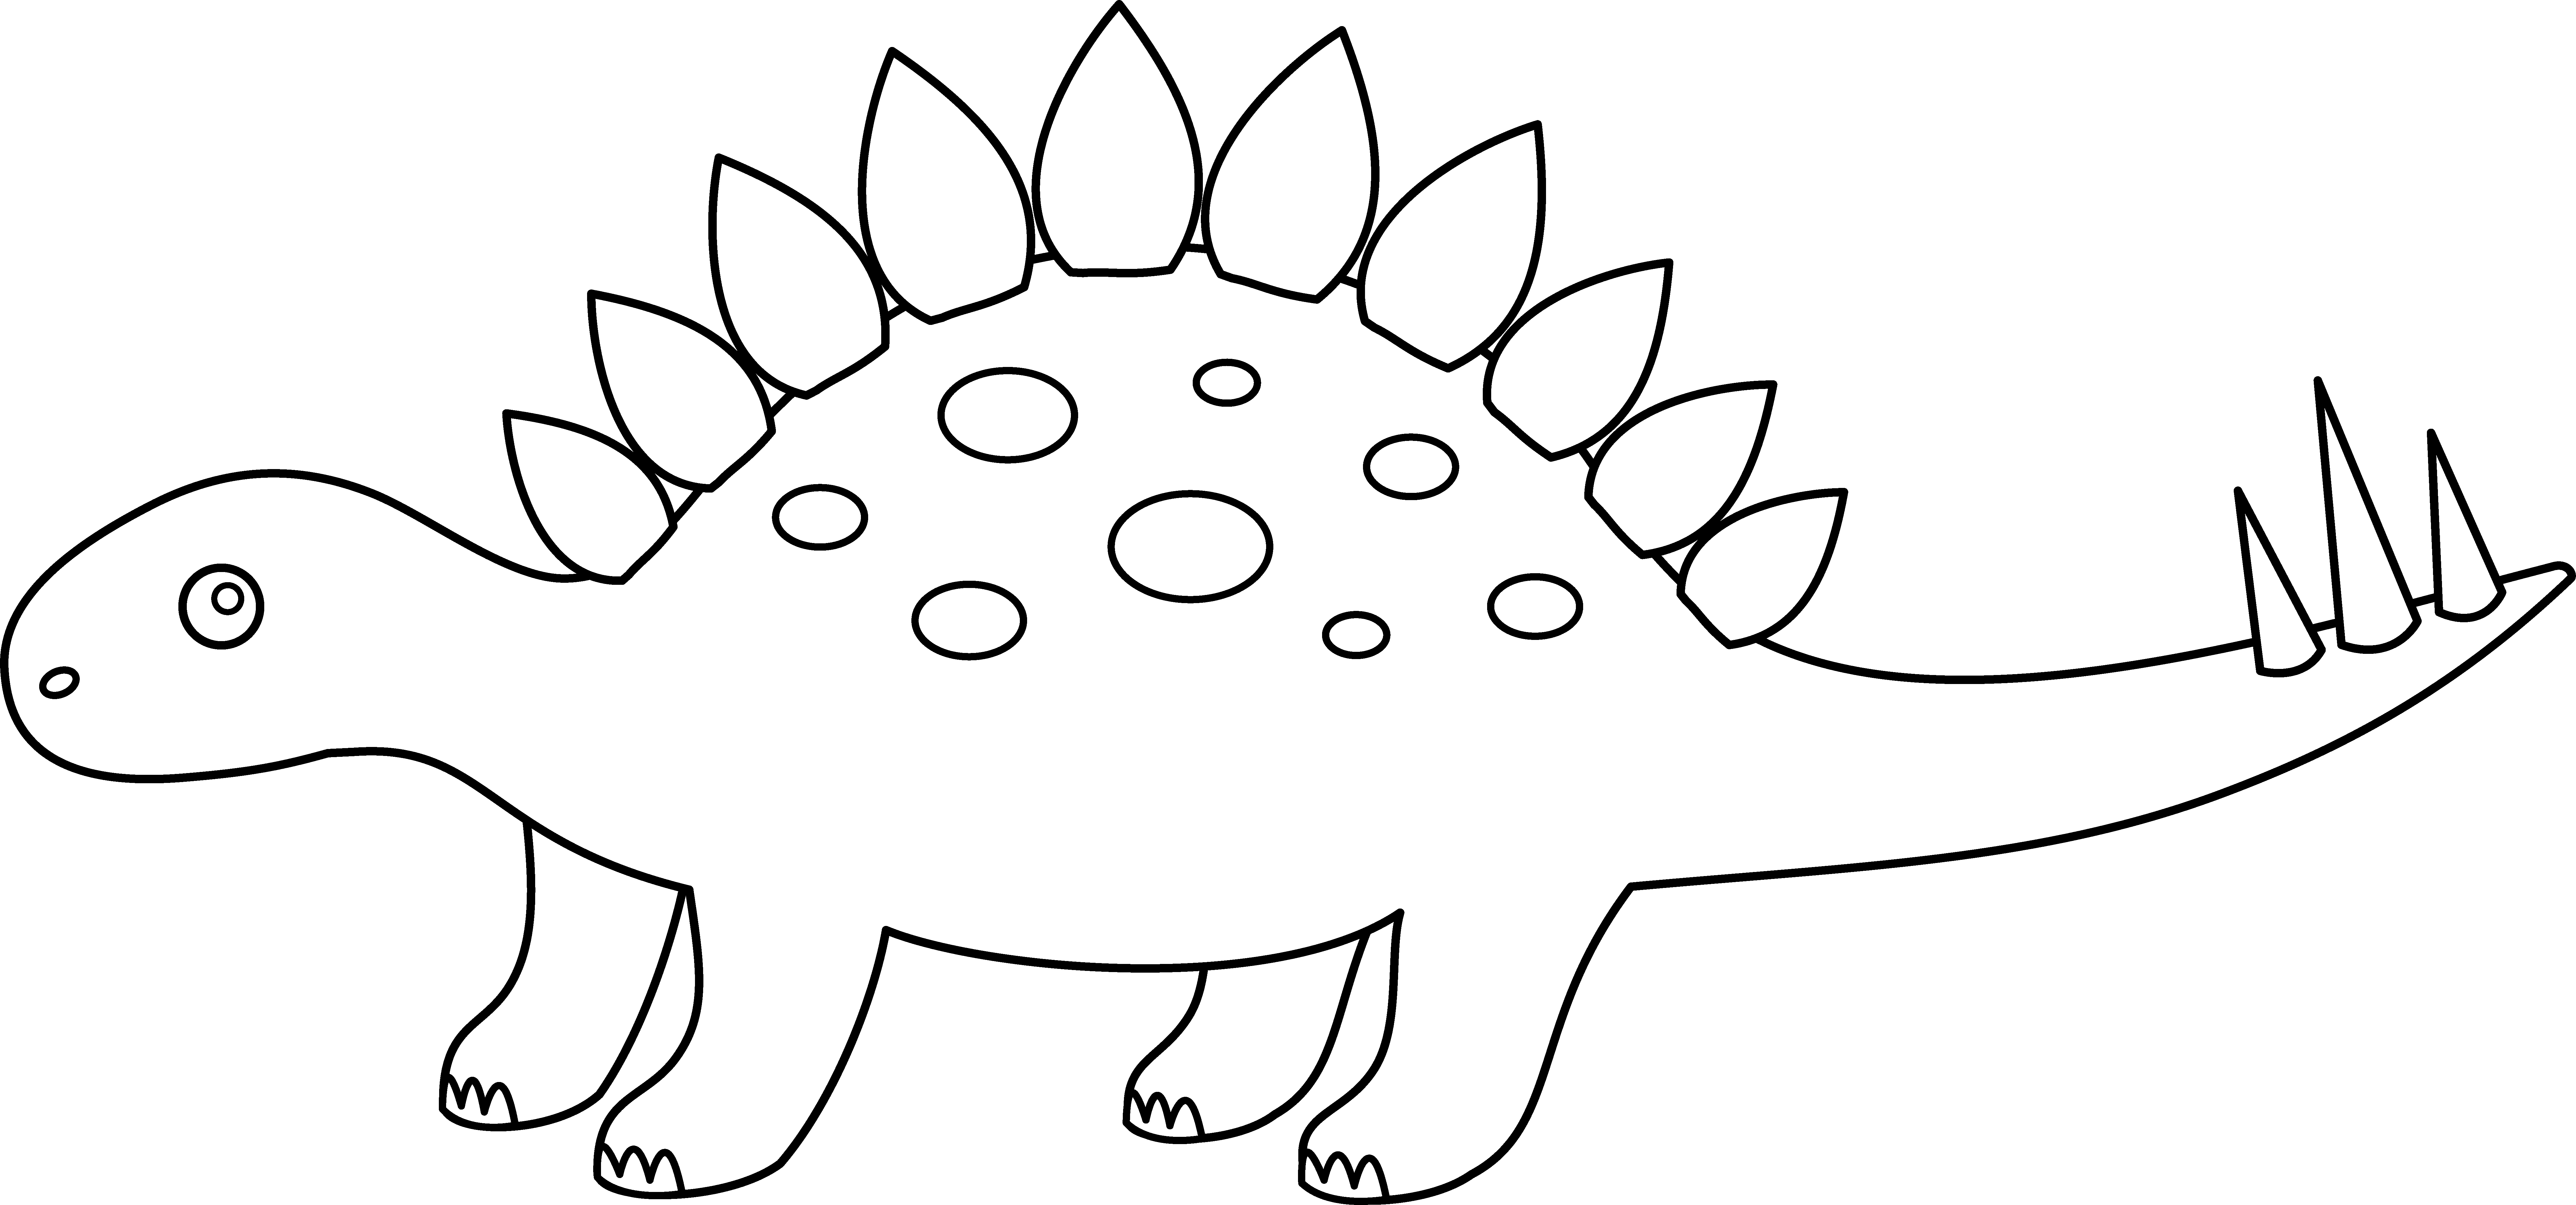 Dinosaur template free collection. Zombie clipart outline